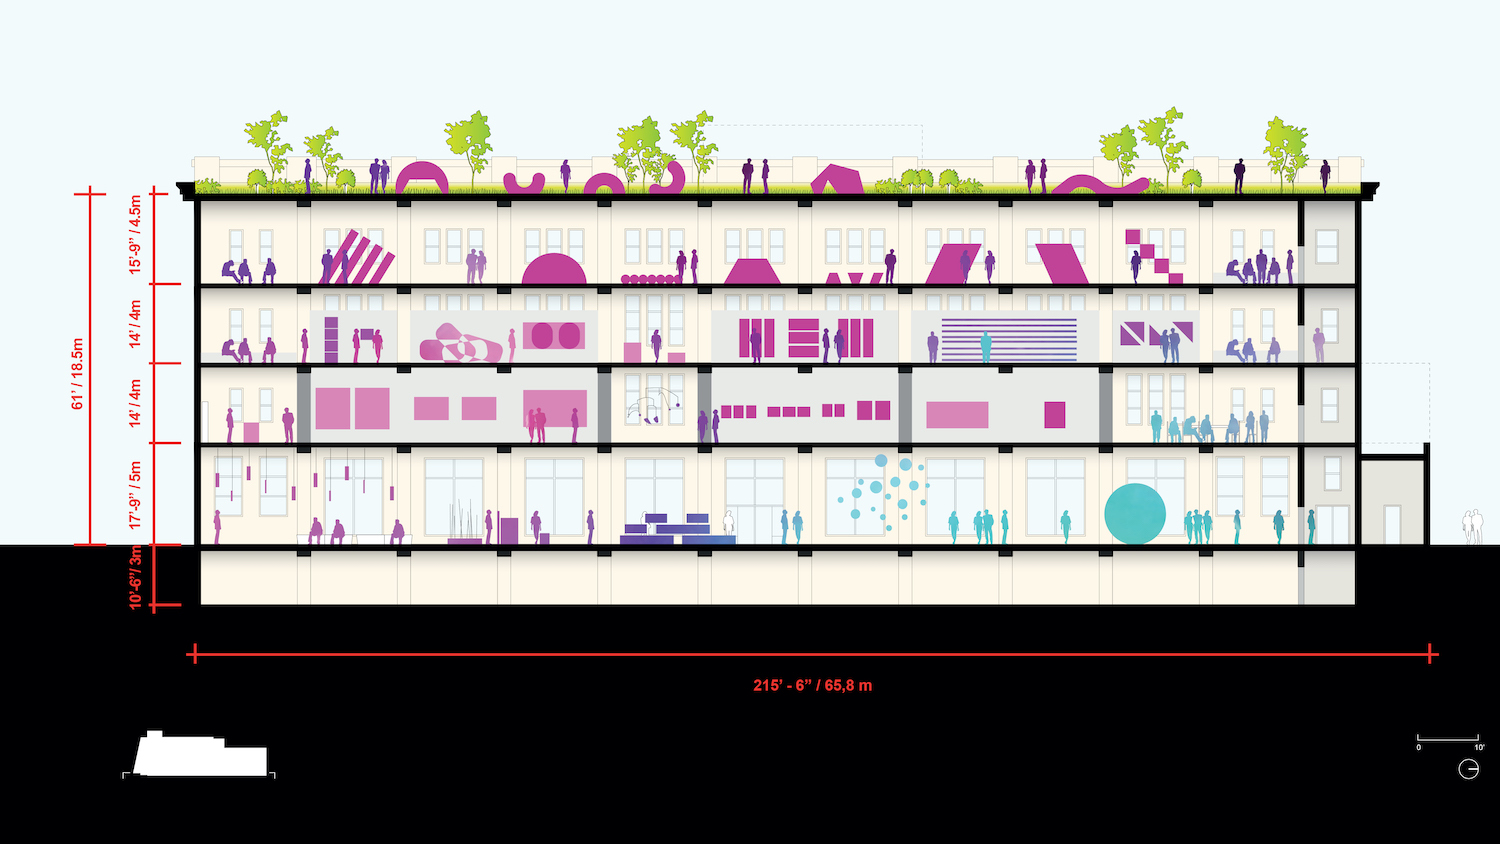 Conceptual Building Section of the Centre Pompidou × Jersey City